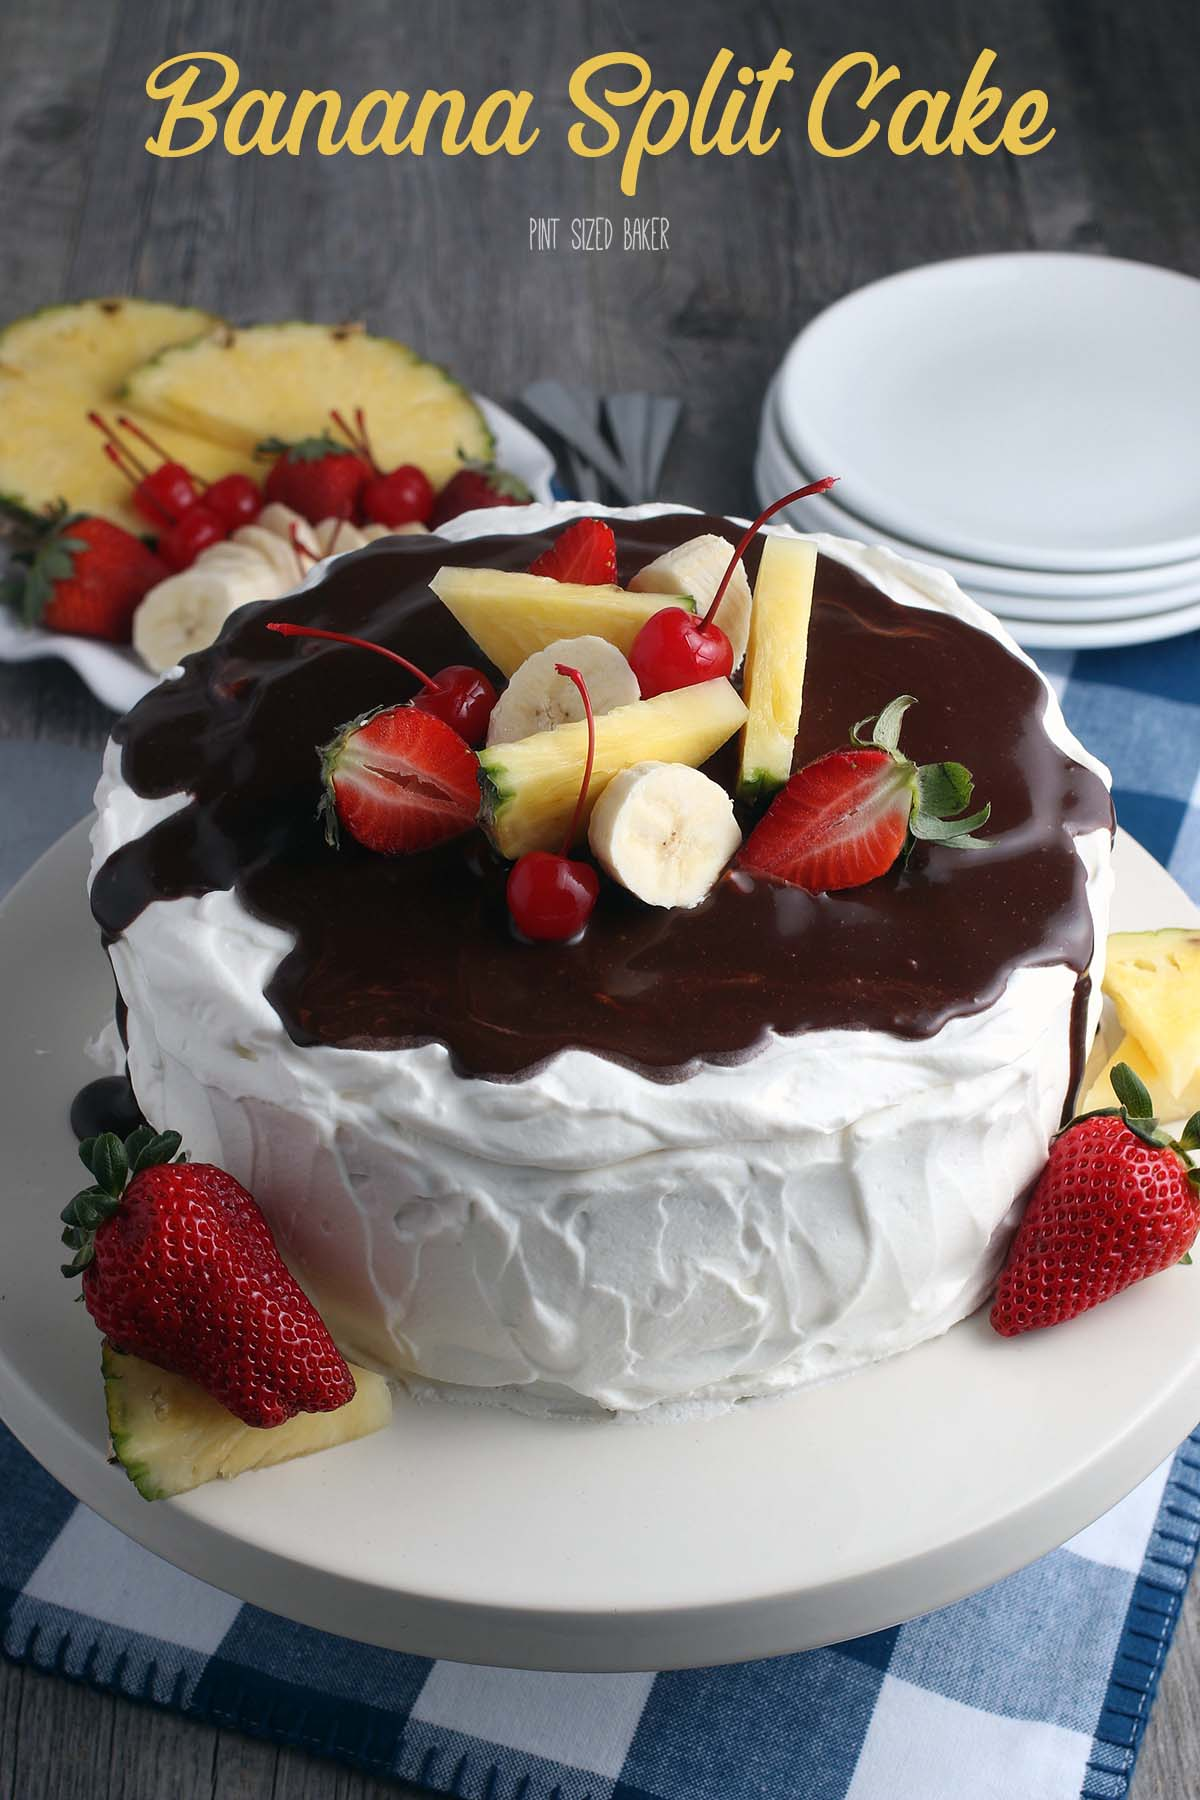 Making this recipe for banana split cake is simple! I'll show you how to make banana split cake, the perfect easy dessert recipe.